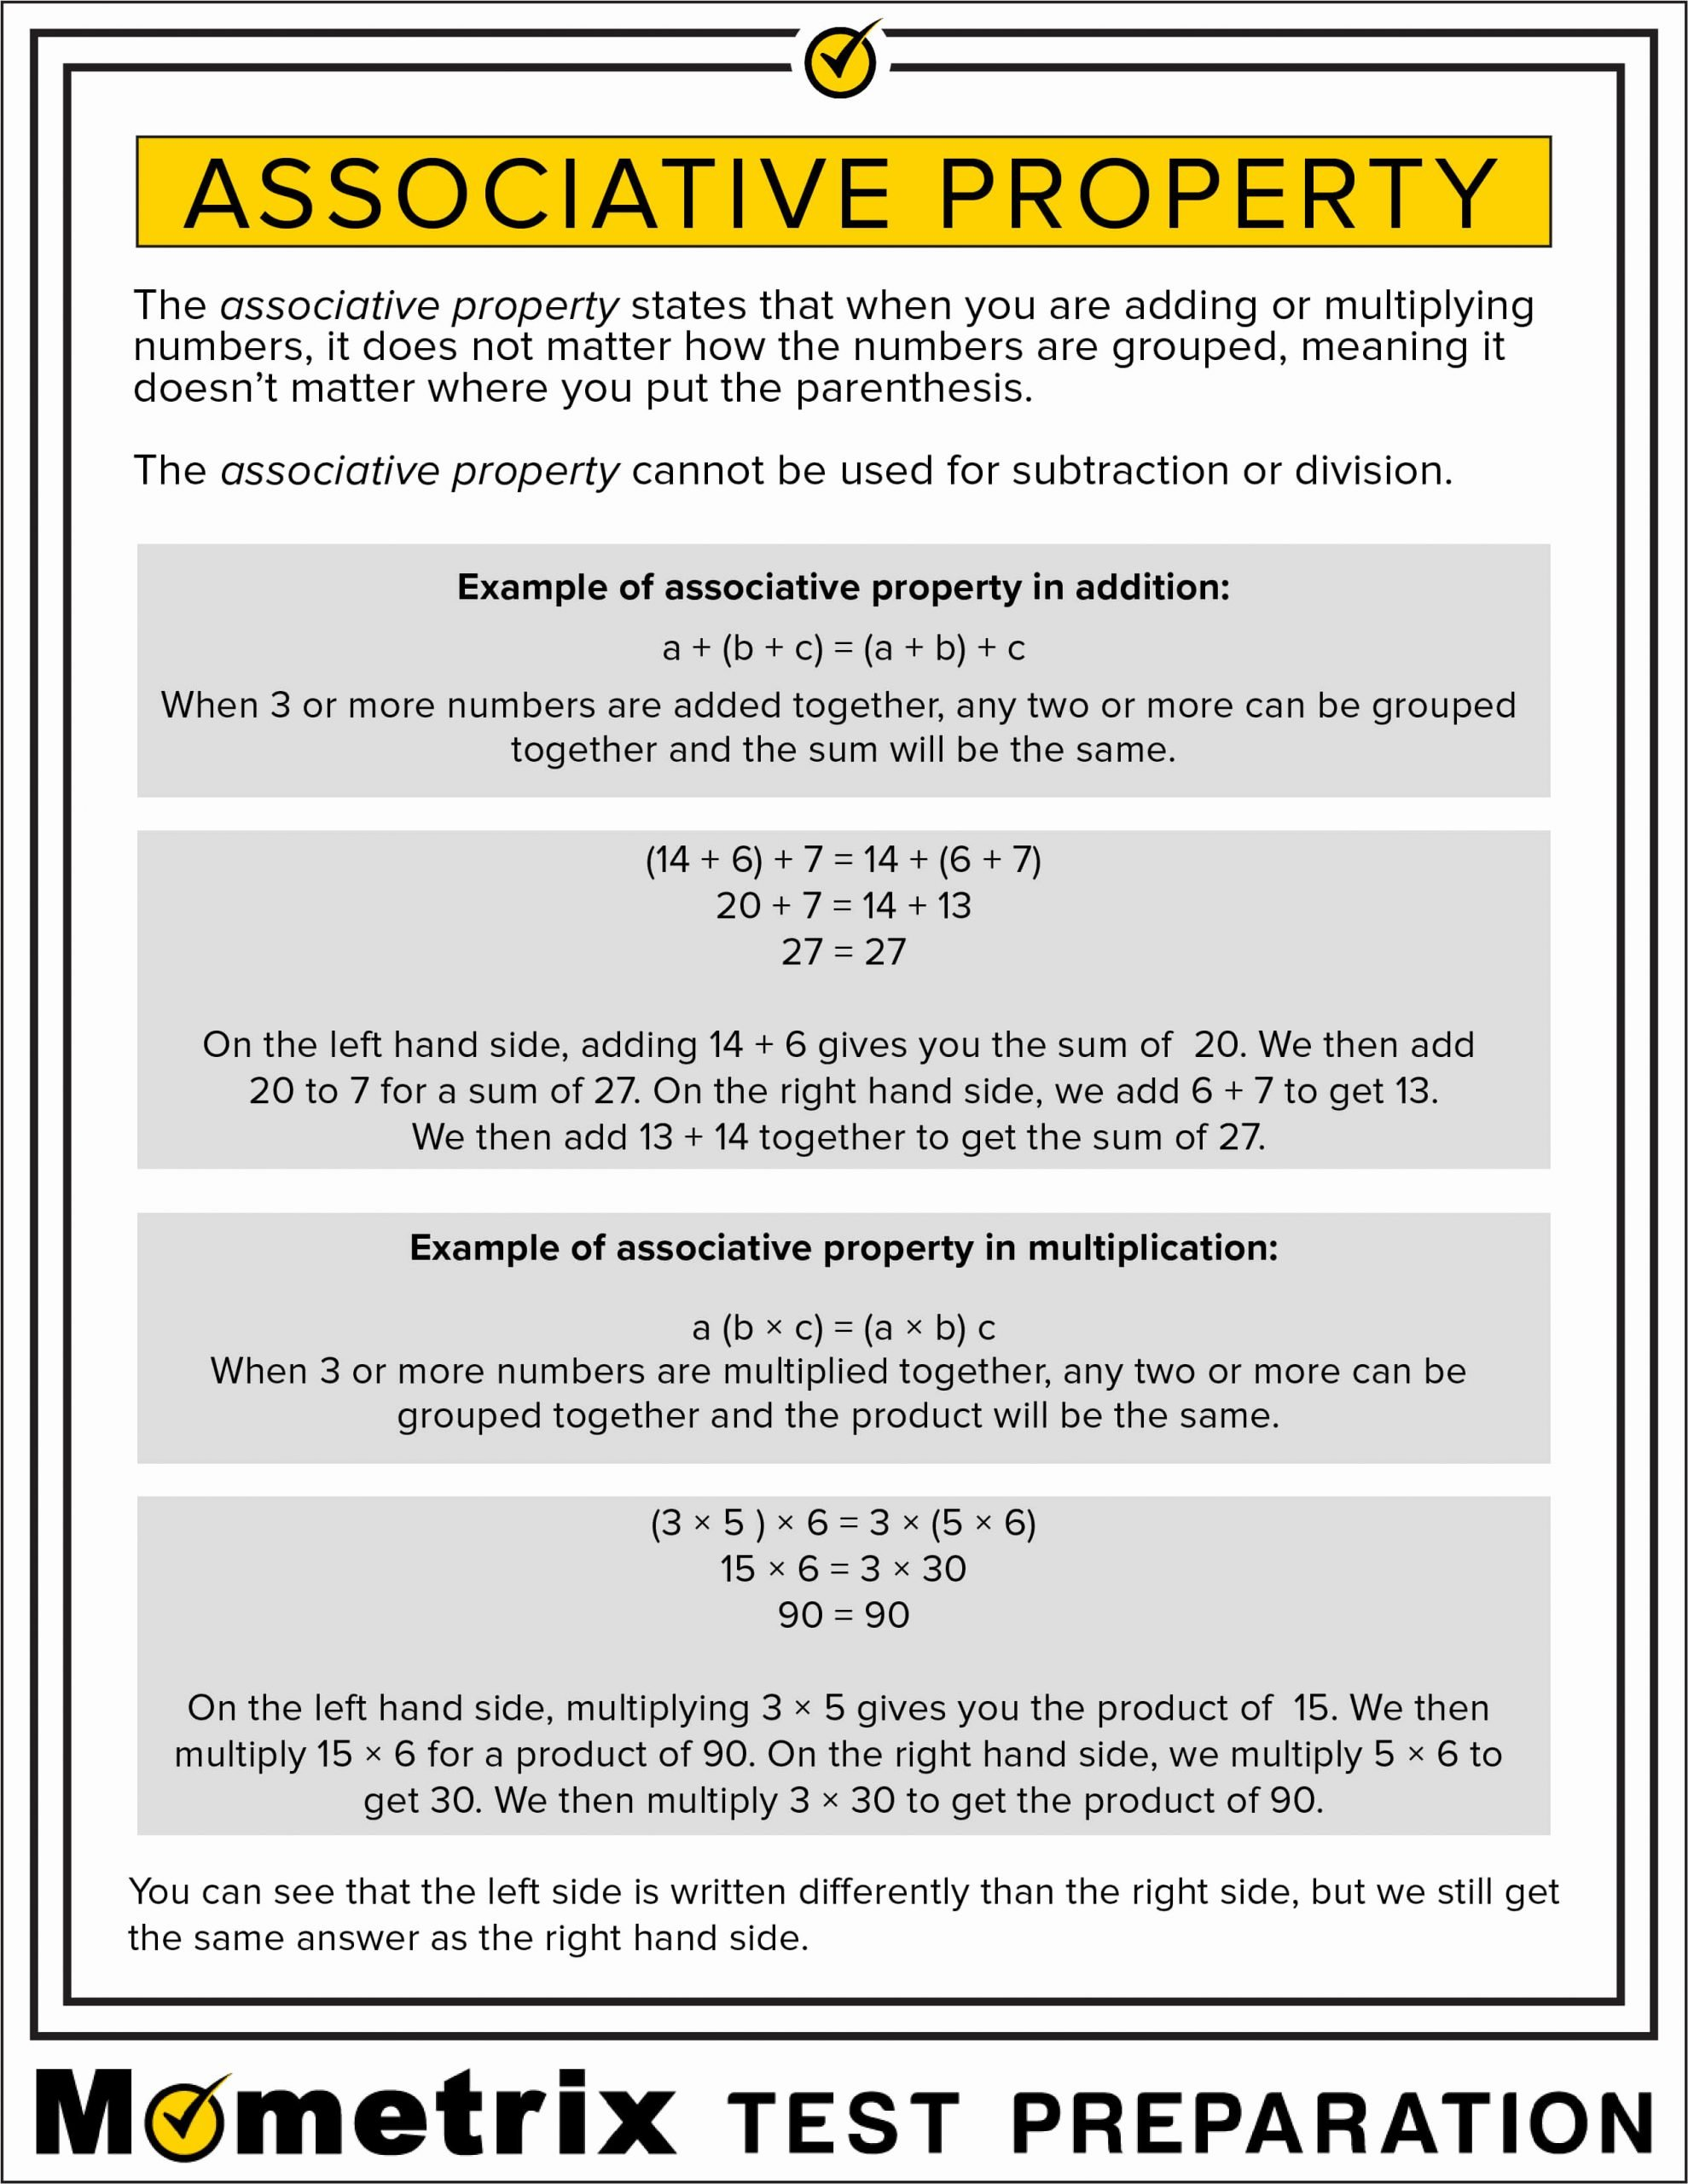 Commutative Property Of Multiplication Worksheets Inspirational Free associative Property Multiplication Worksheets